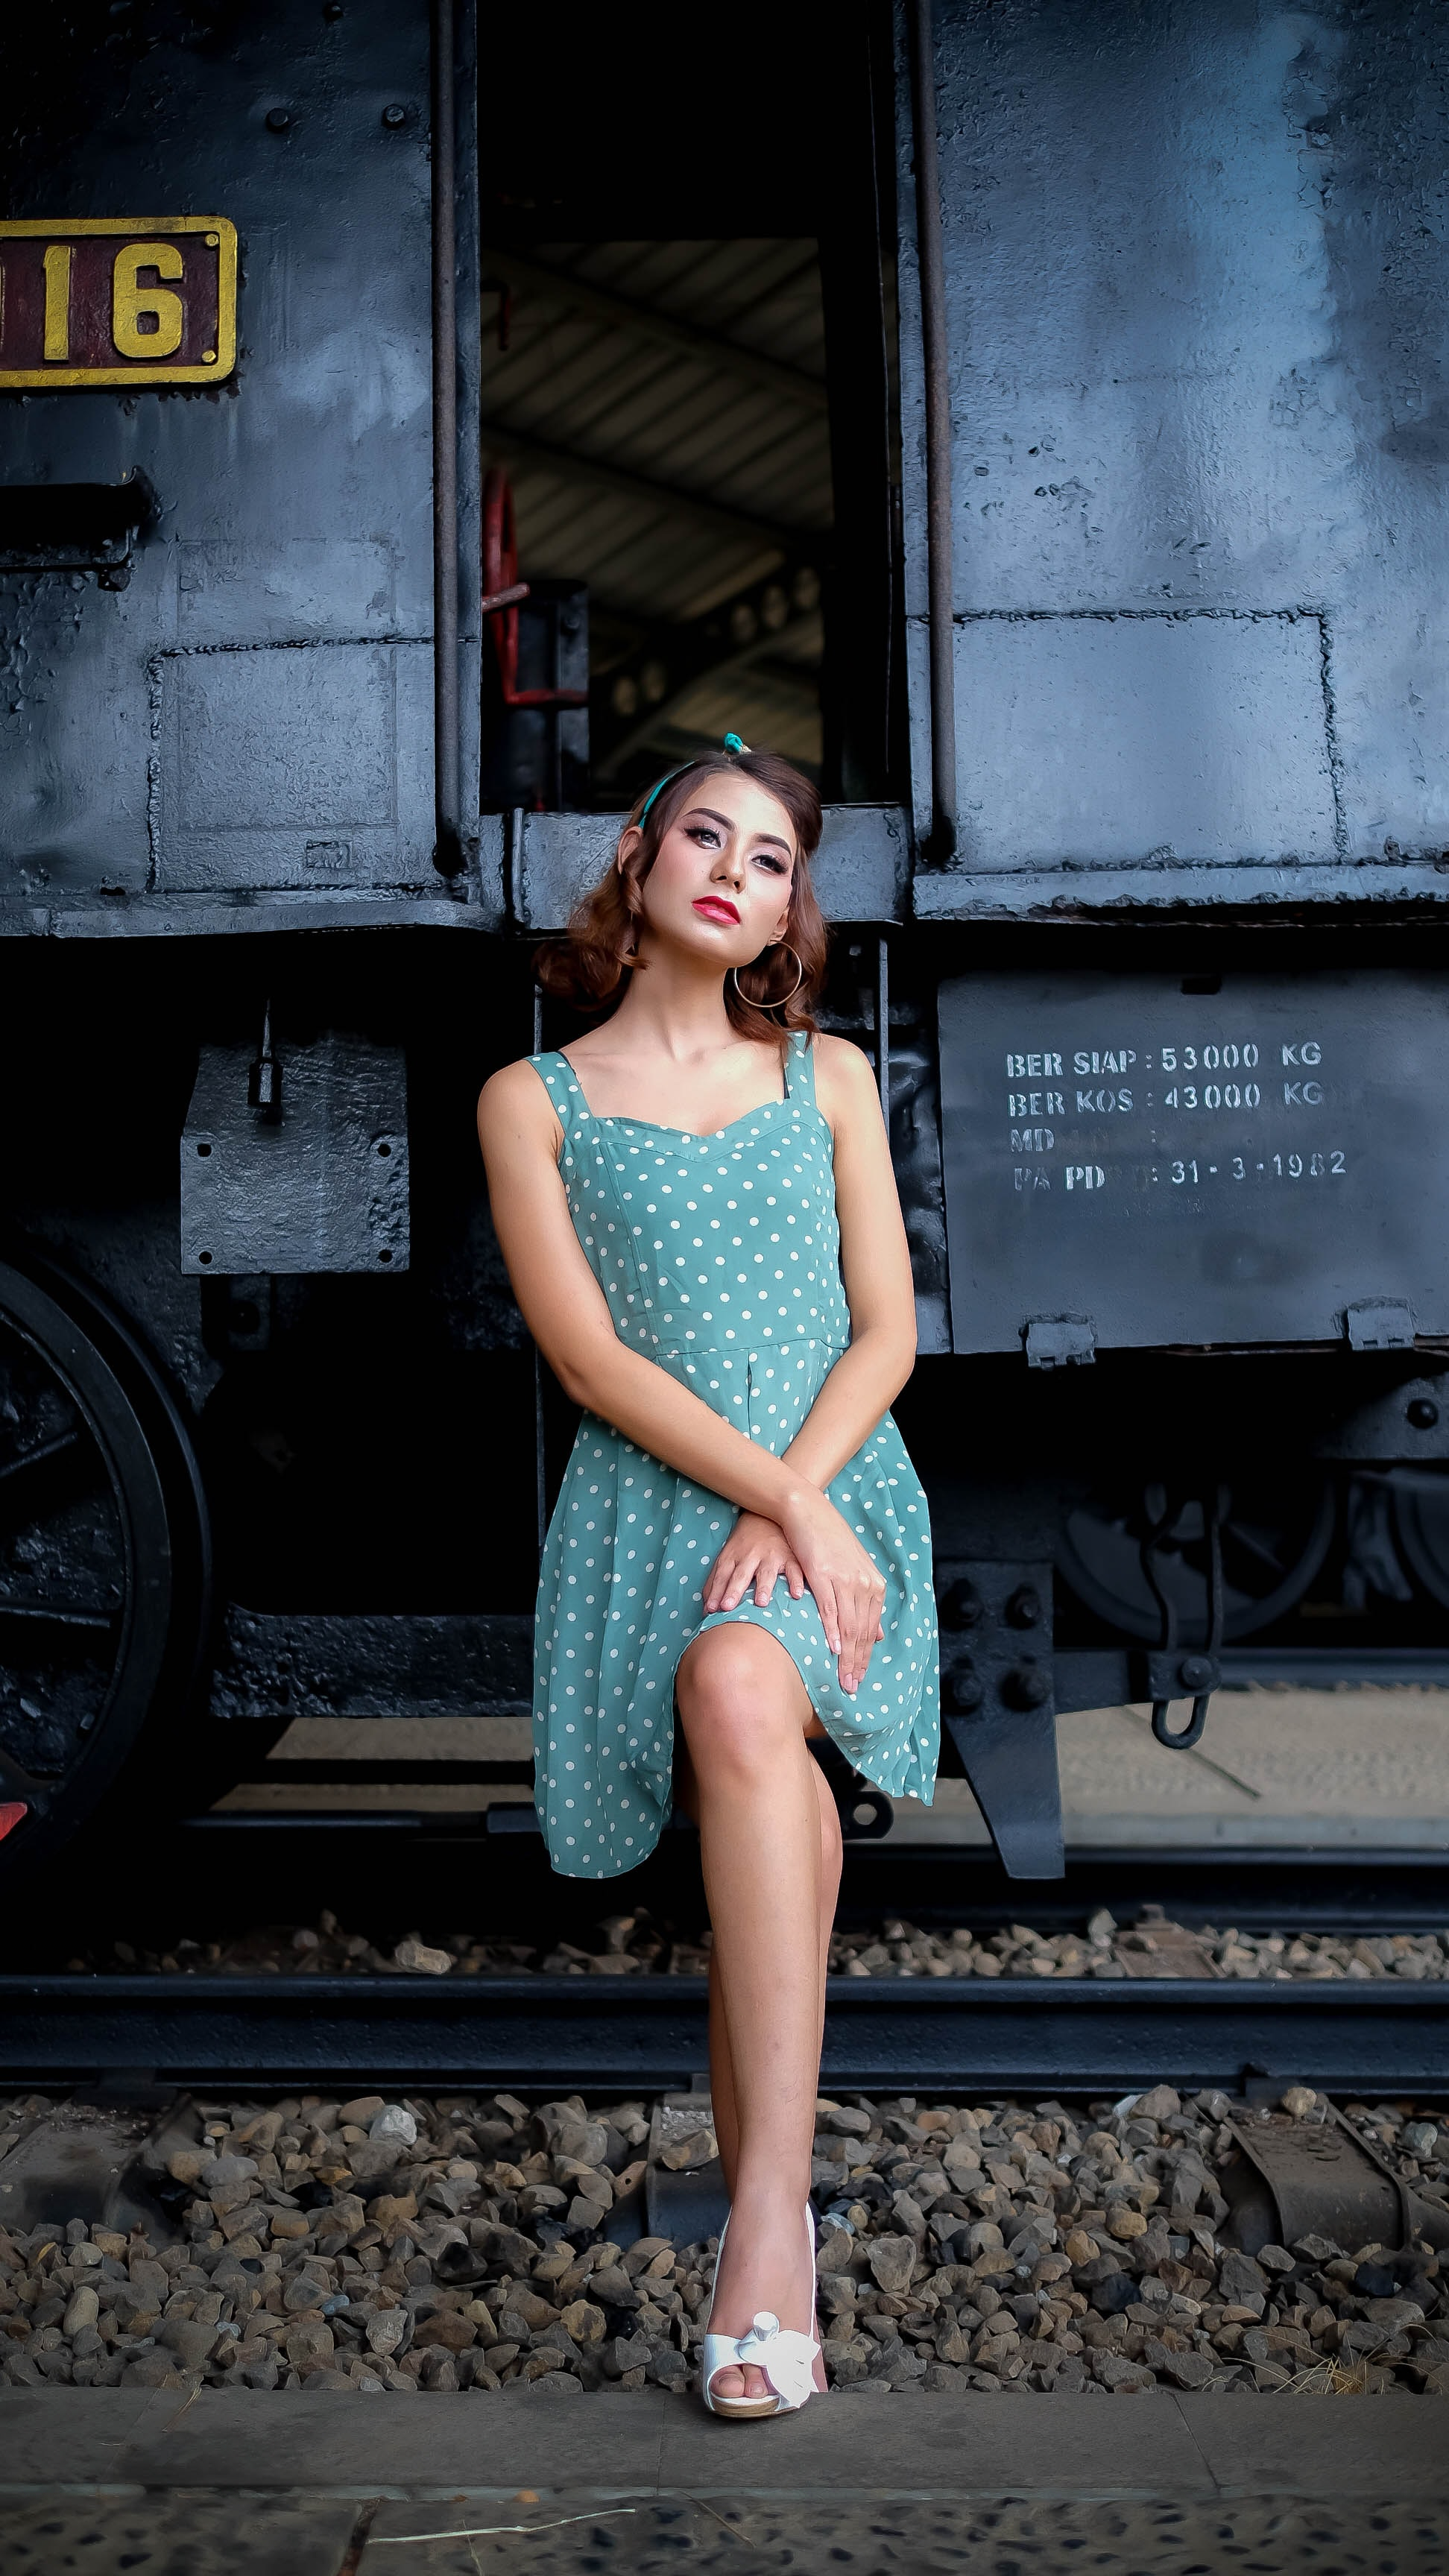 woman sitting on train posing for photoshoot